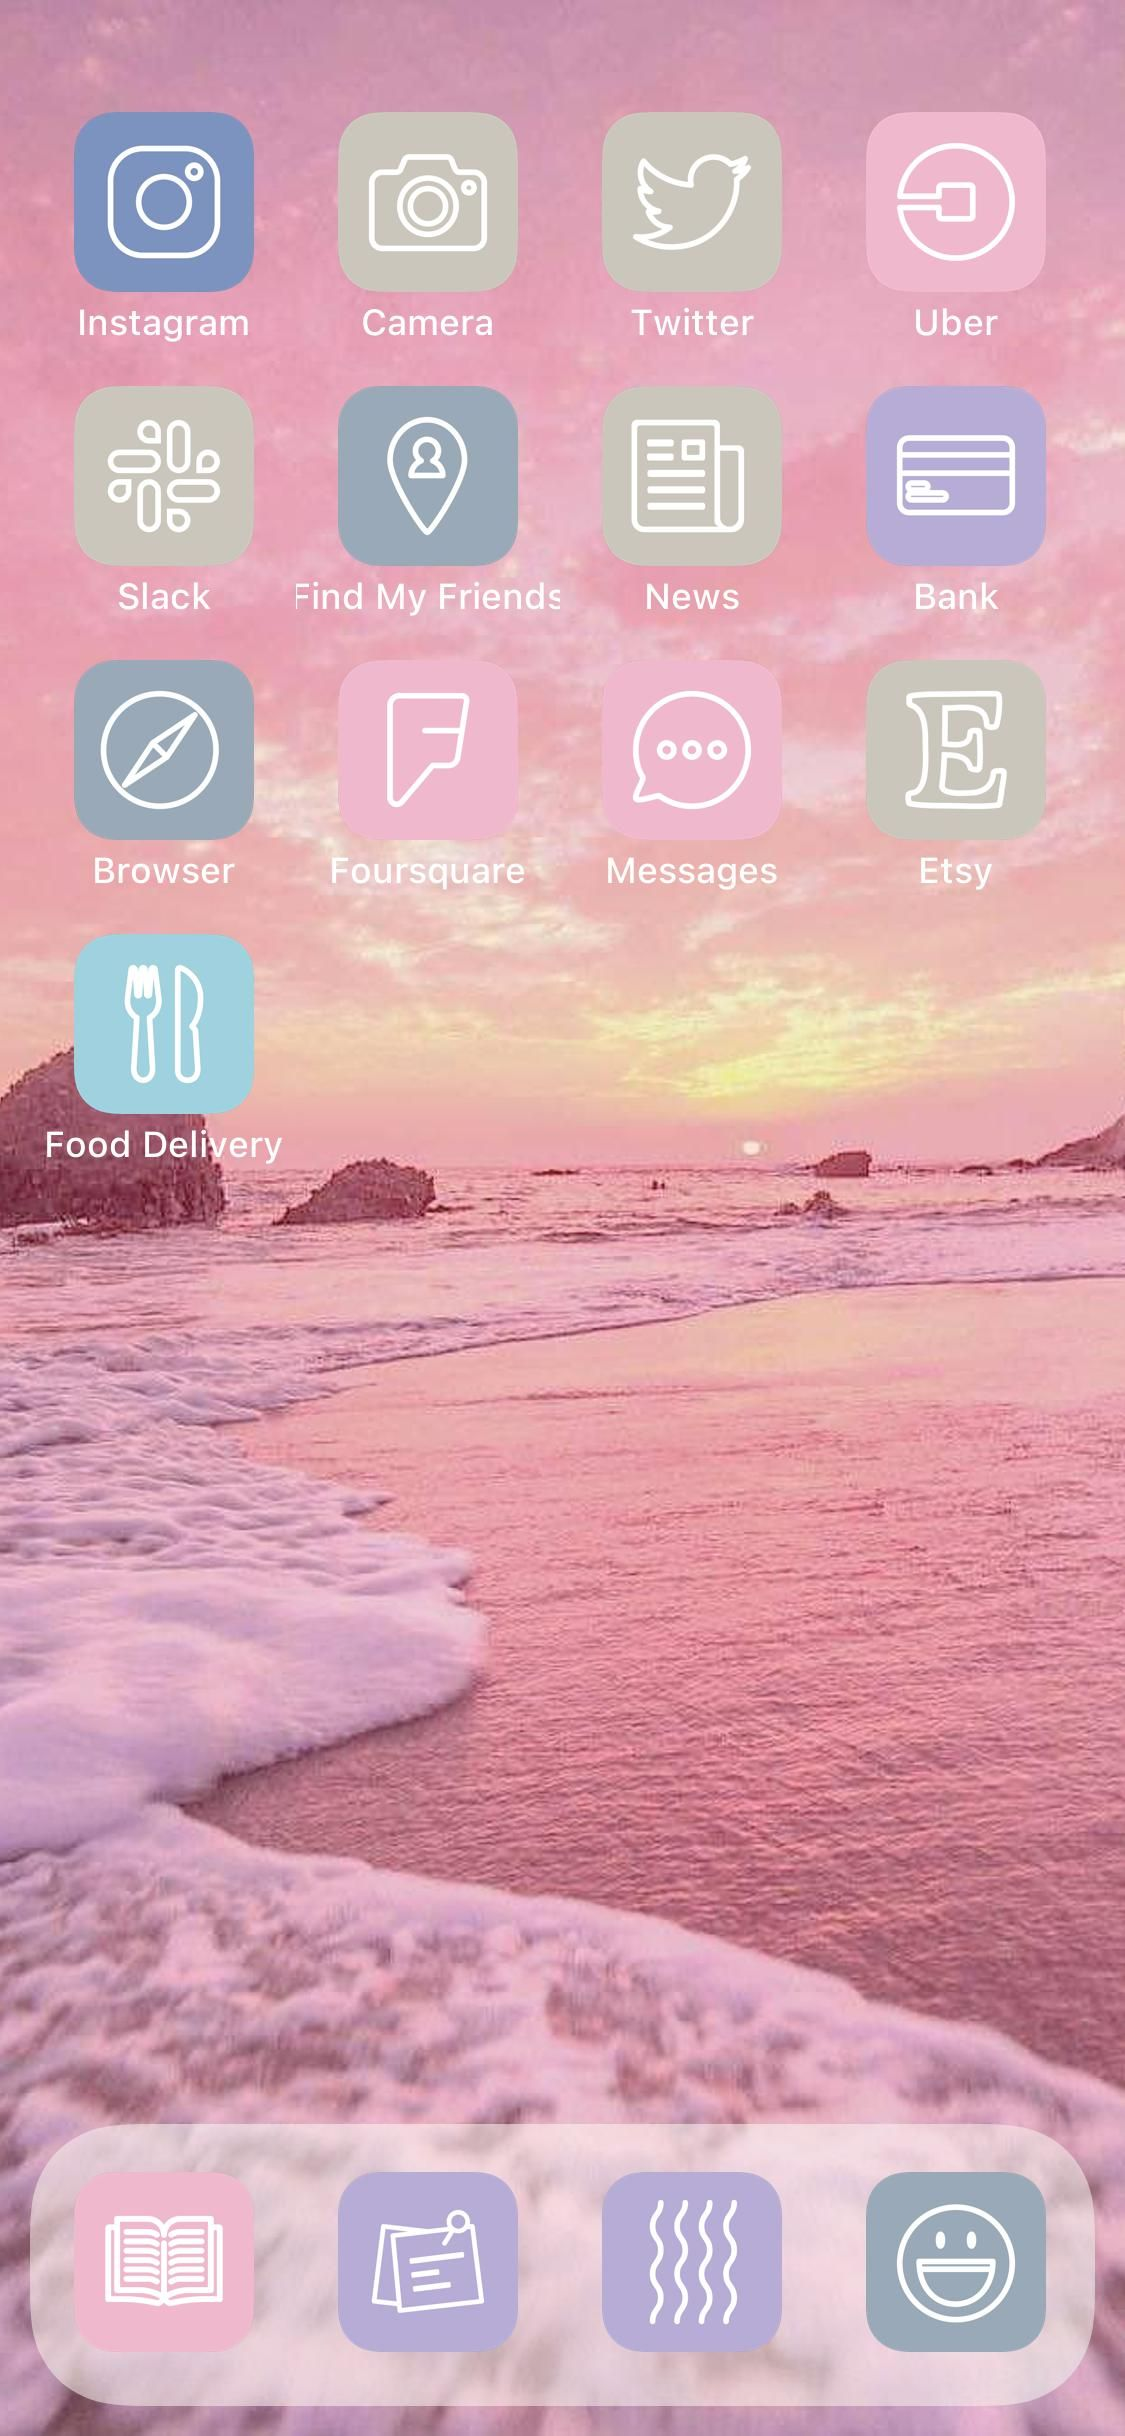 Megapack With 4 000 Unique Pastel Beach Ios 14 App Icons For Your Iphone Or Ipad Home Screen Aesthetic Bundle For Shortcuts Customization App Icon Homescreen Find My Friends